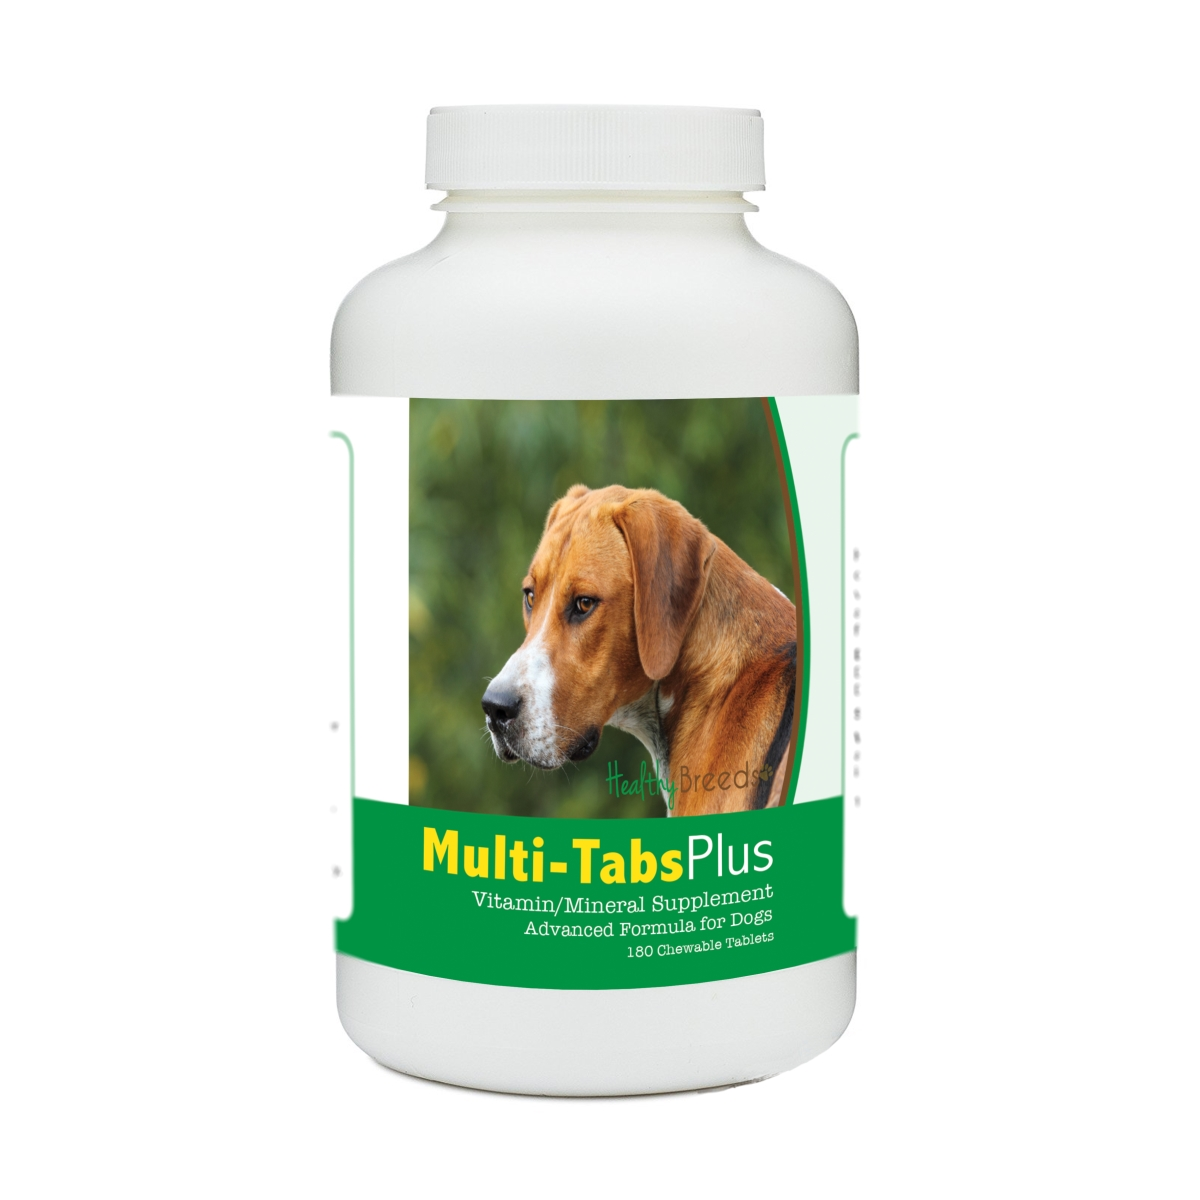 Healthy Breeds 840235180609 English Foxhound Multi-Tabs Plus Chewable Tablets - 180 Count